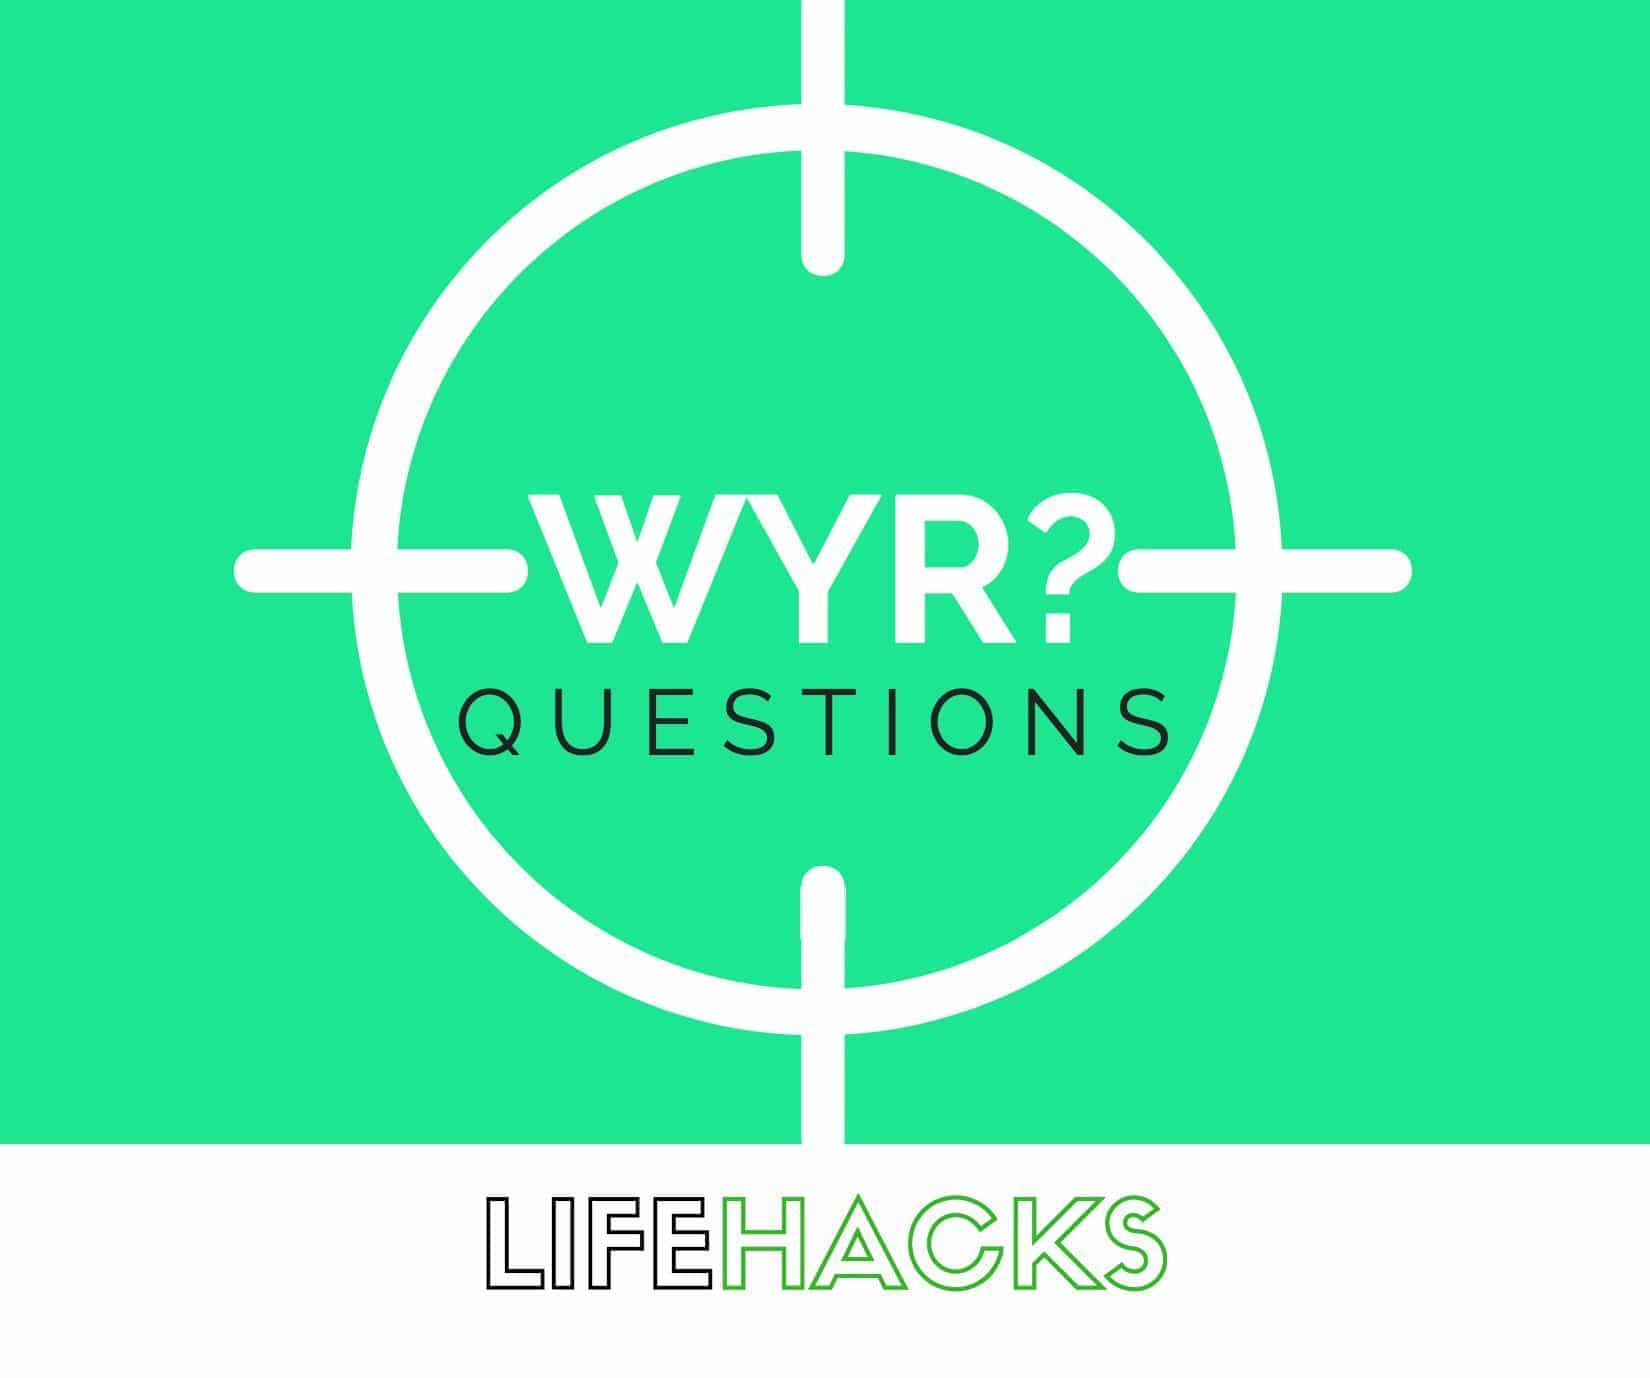 LifeHacks - Funny Would you rather questions